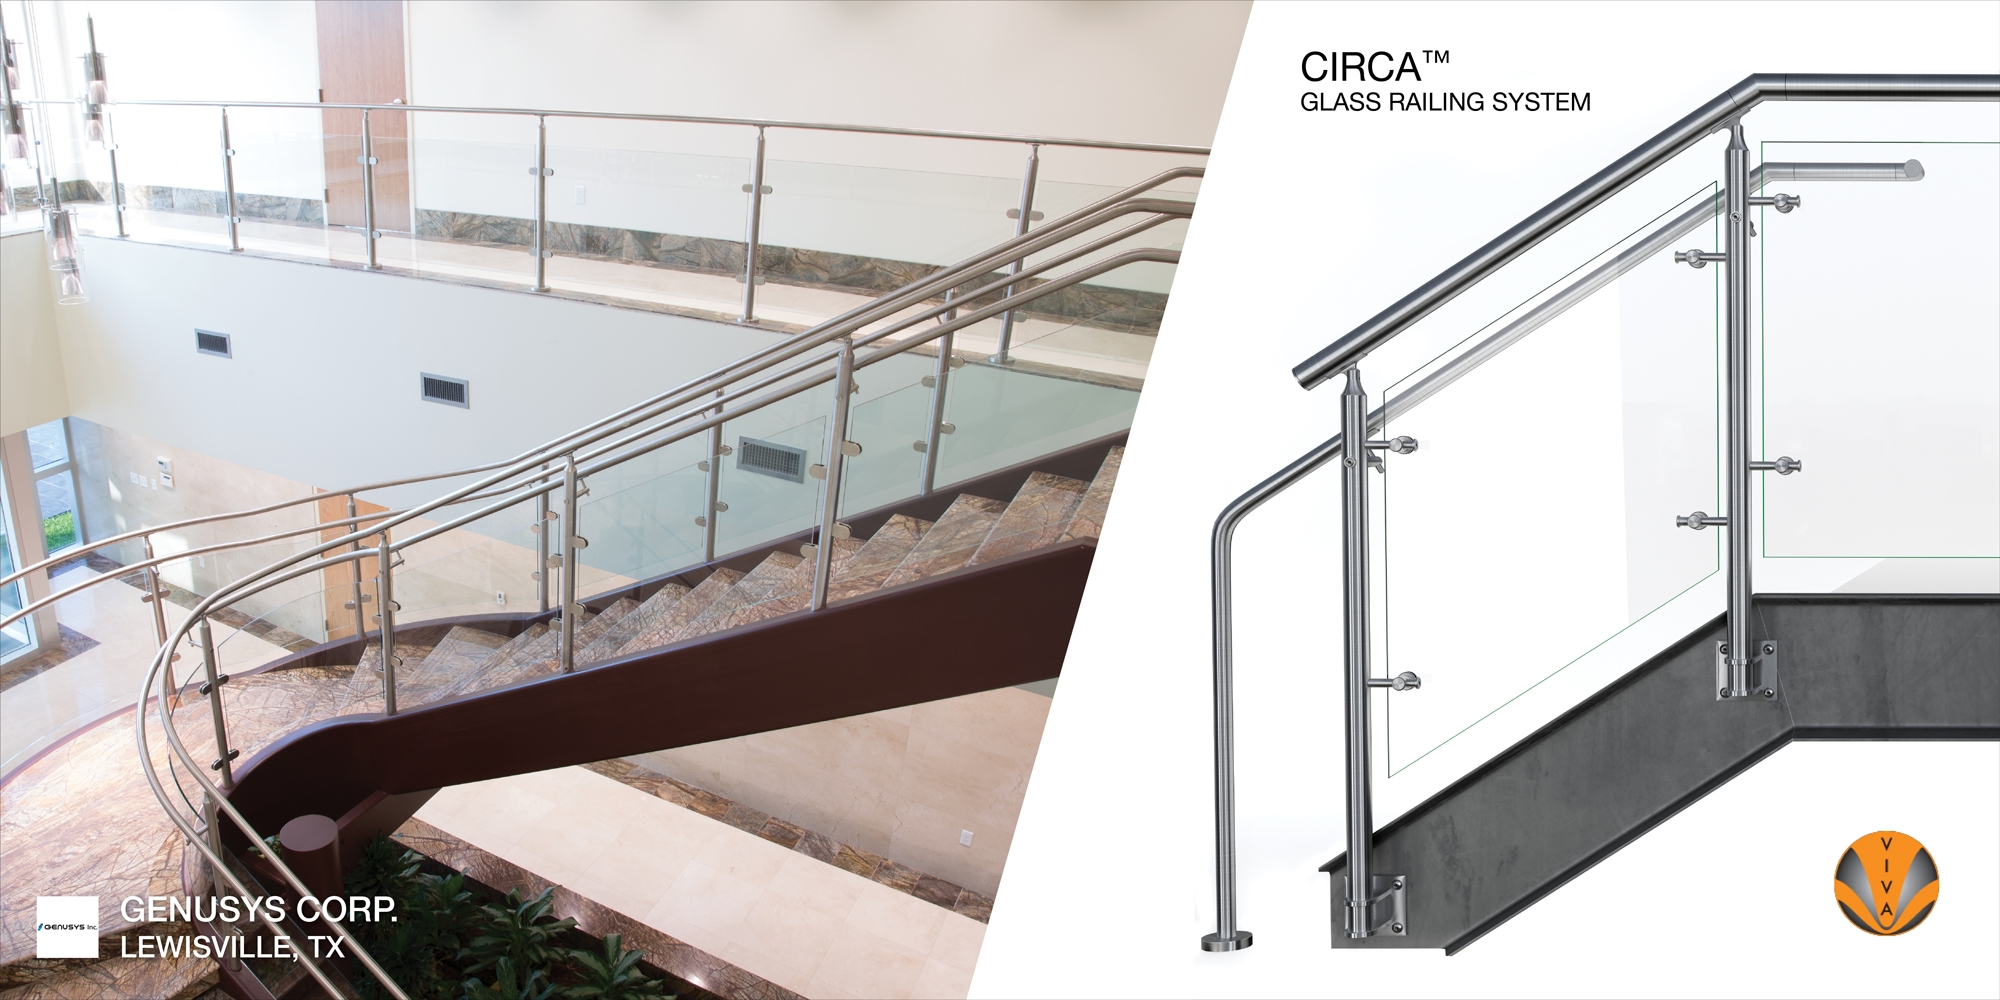 Curved Glass Railing System Circa™ Genusys Corporation | Glass Railing For Stairs Price | Curved Glass Balustrade | China | Spiral Staircase | Frameless Glass | Cable Railing